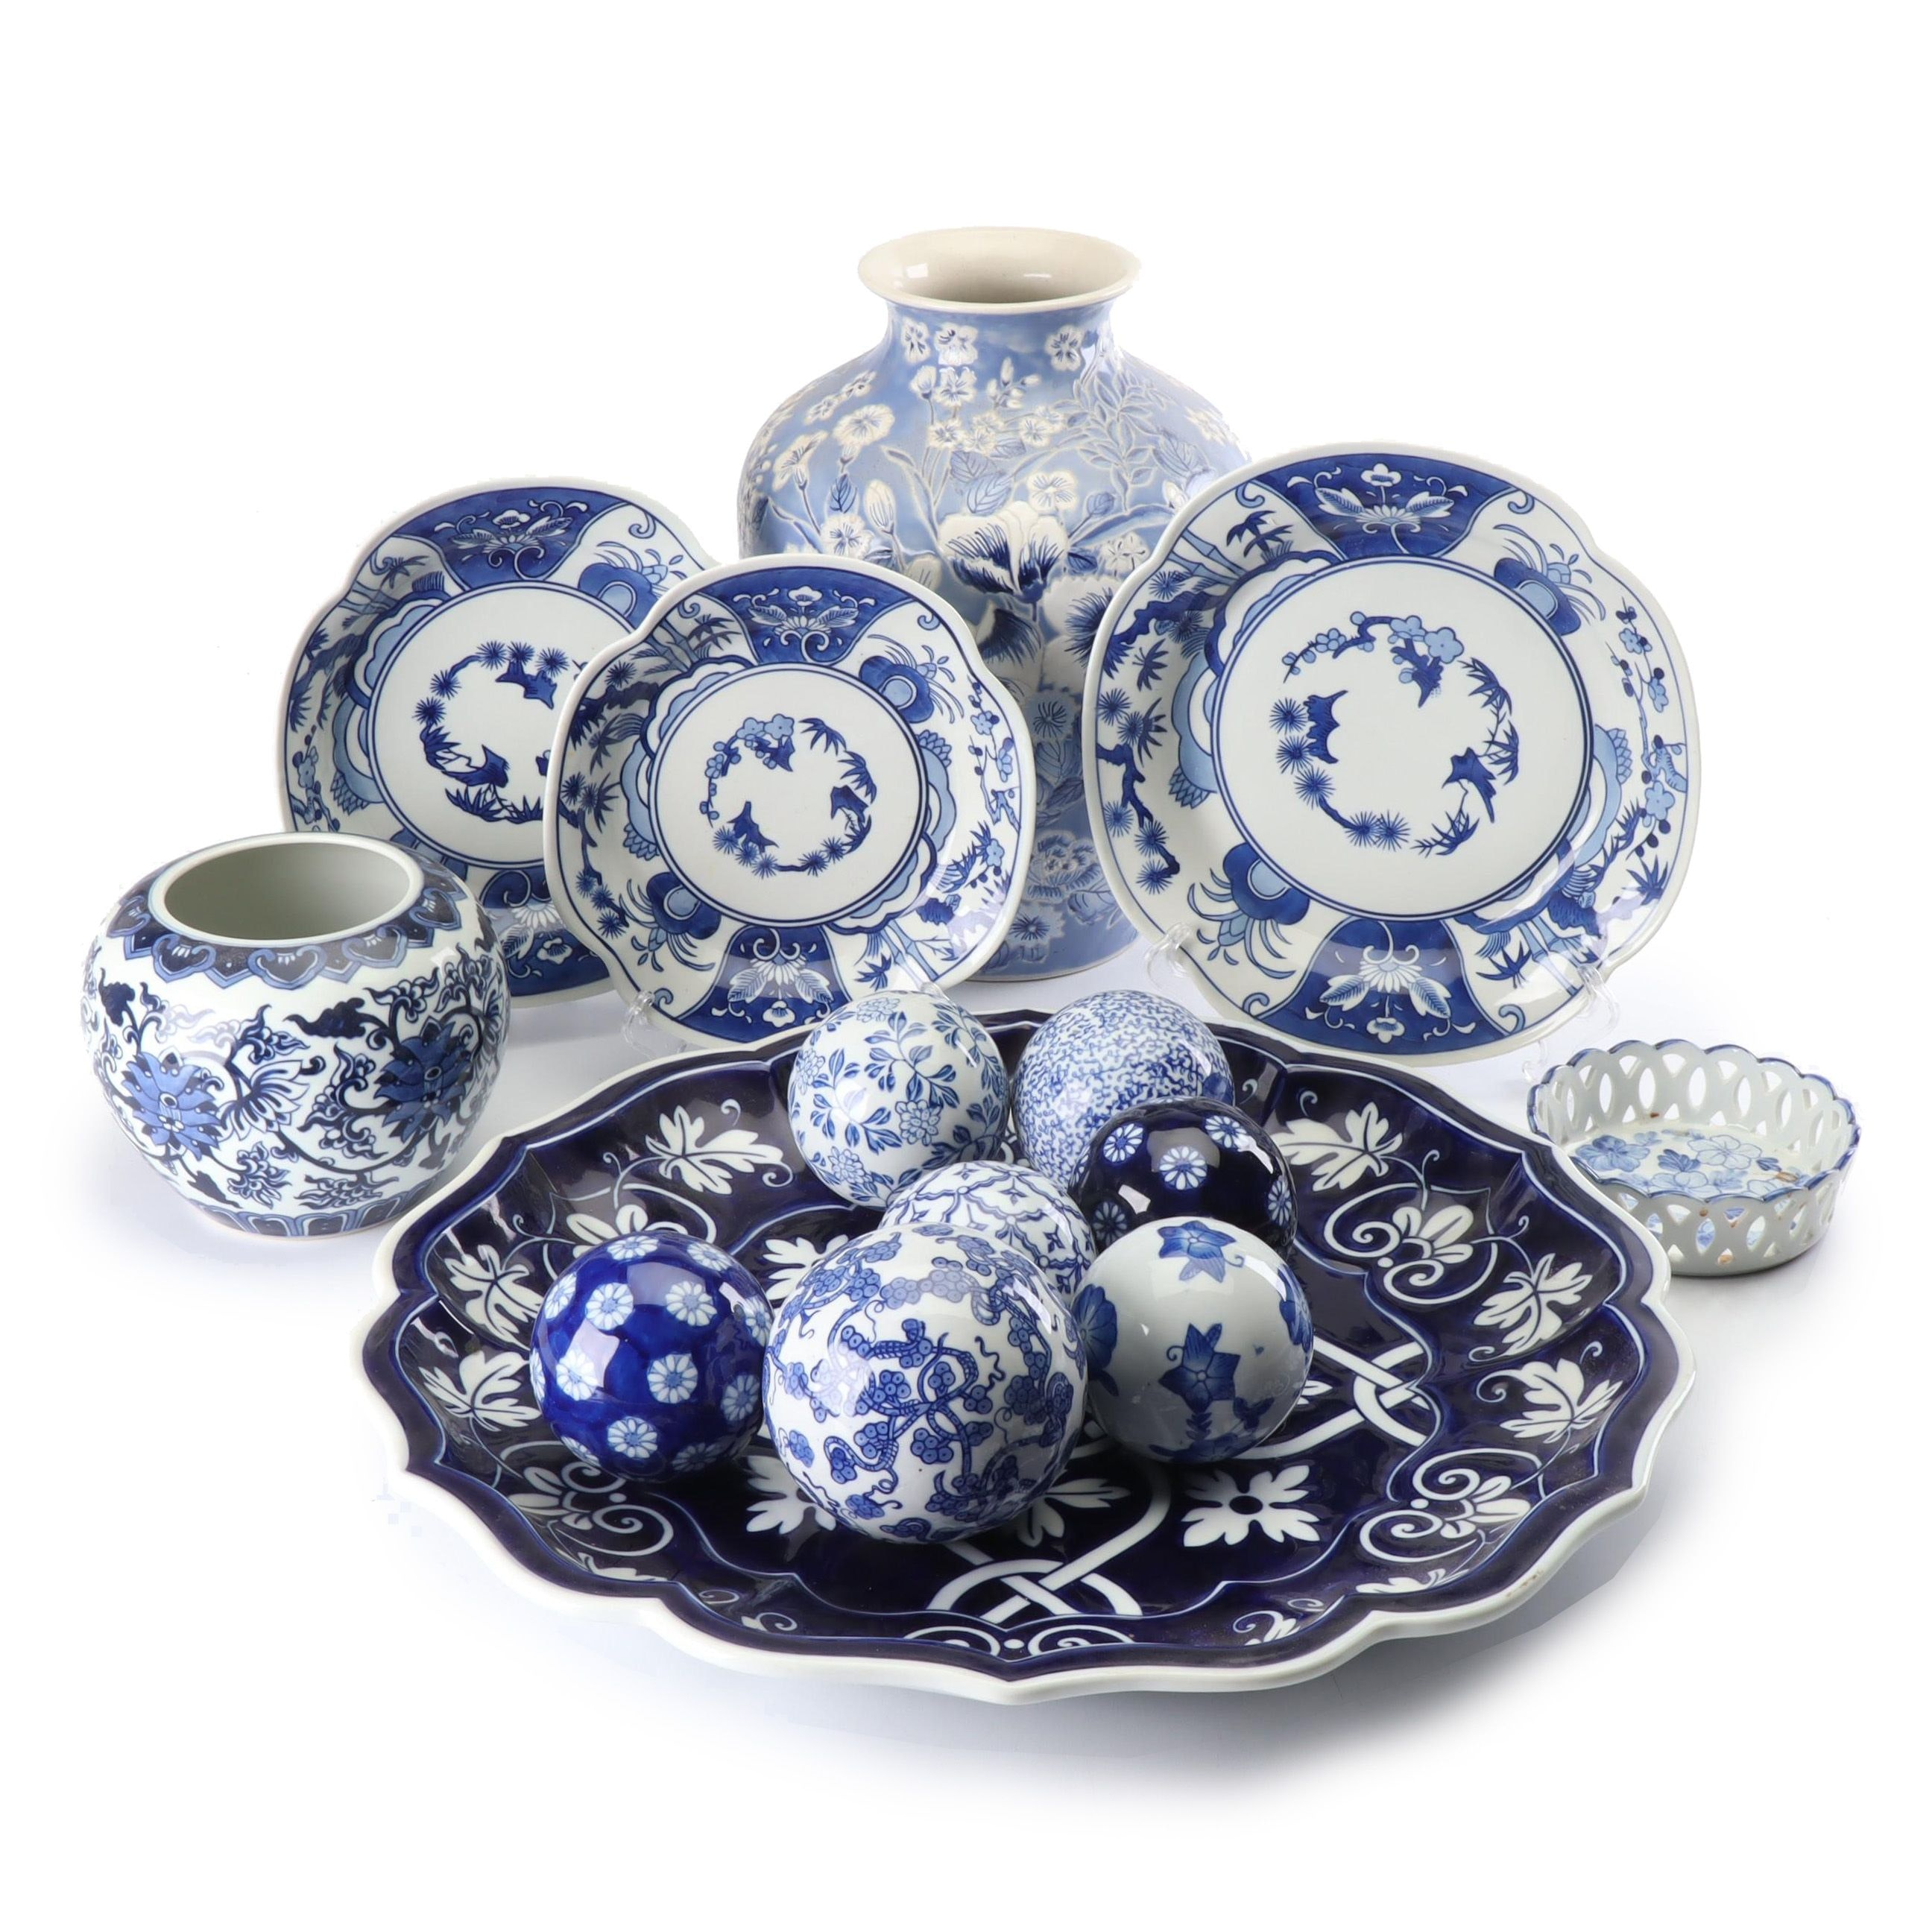 Chinese Blue and White Vases and Decorative Tableware